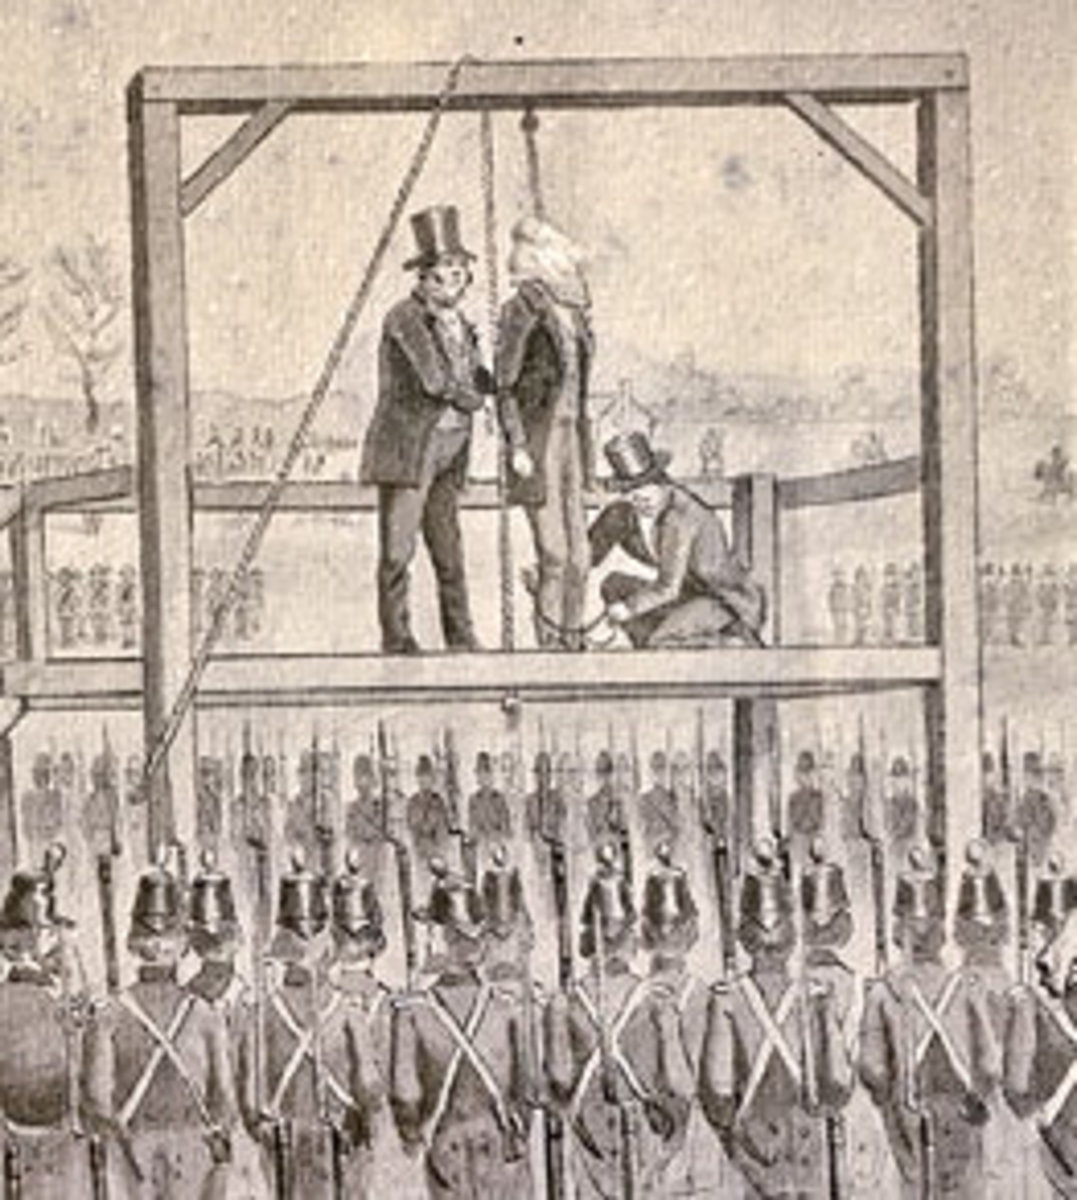 The Hanging of John Brown. Image from Wikipedia